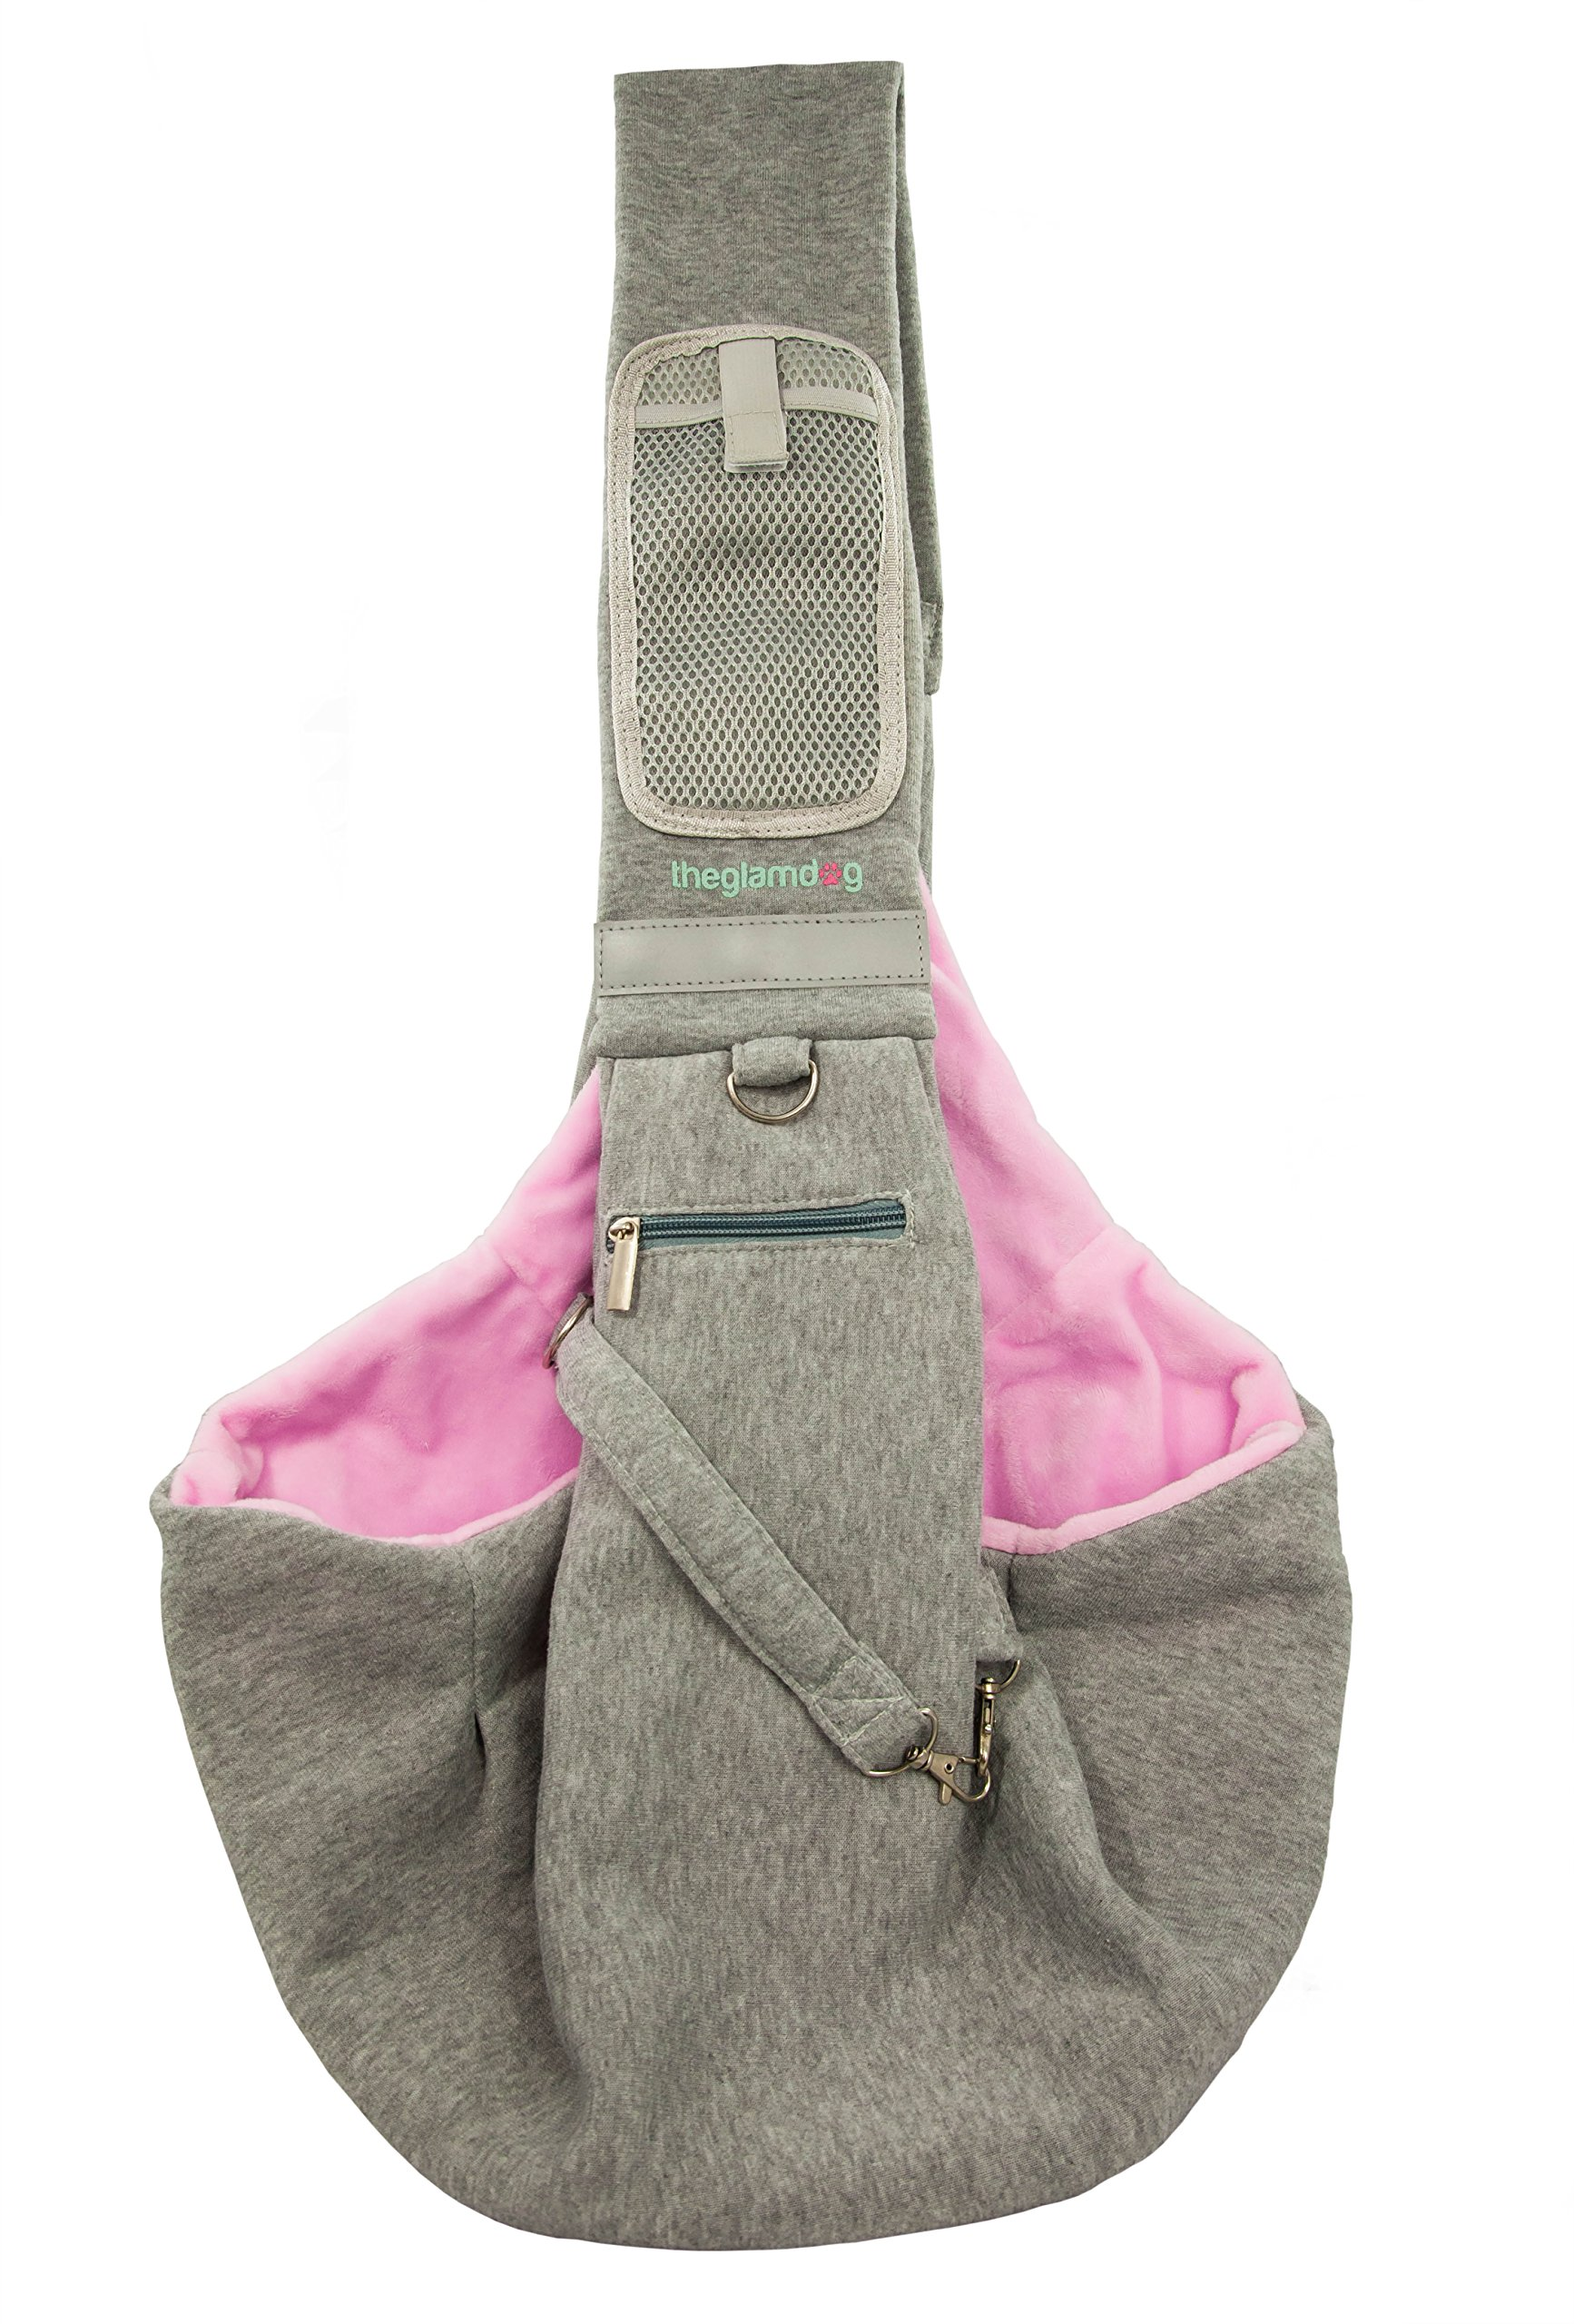 yohino Theglamdog Pet Carrier Shoulder Sling for Small Dogs and Cats, Smartphone Mesh Pocket with Fastenable Closure and Zippered Pocket for Treats, Waste Bags, Small Flashlight (Grey/Pink)